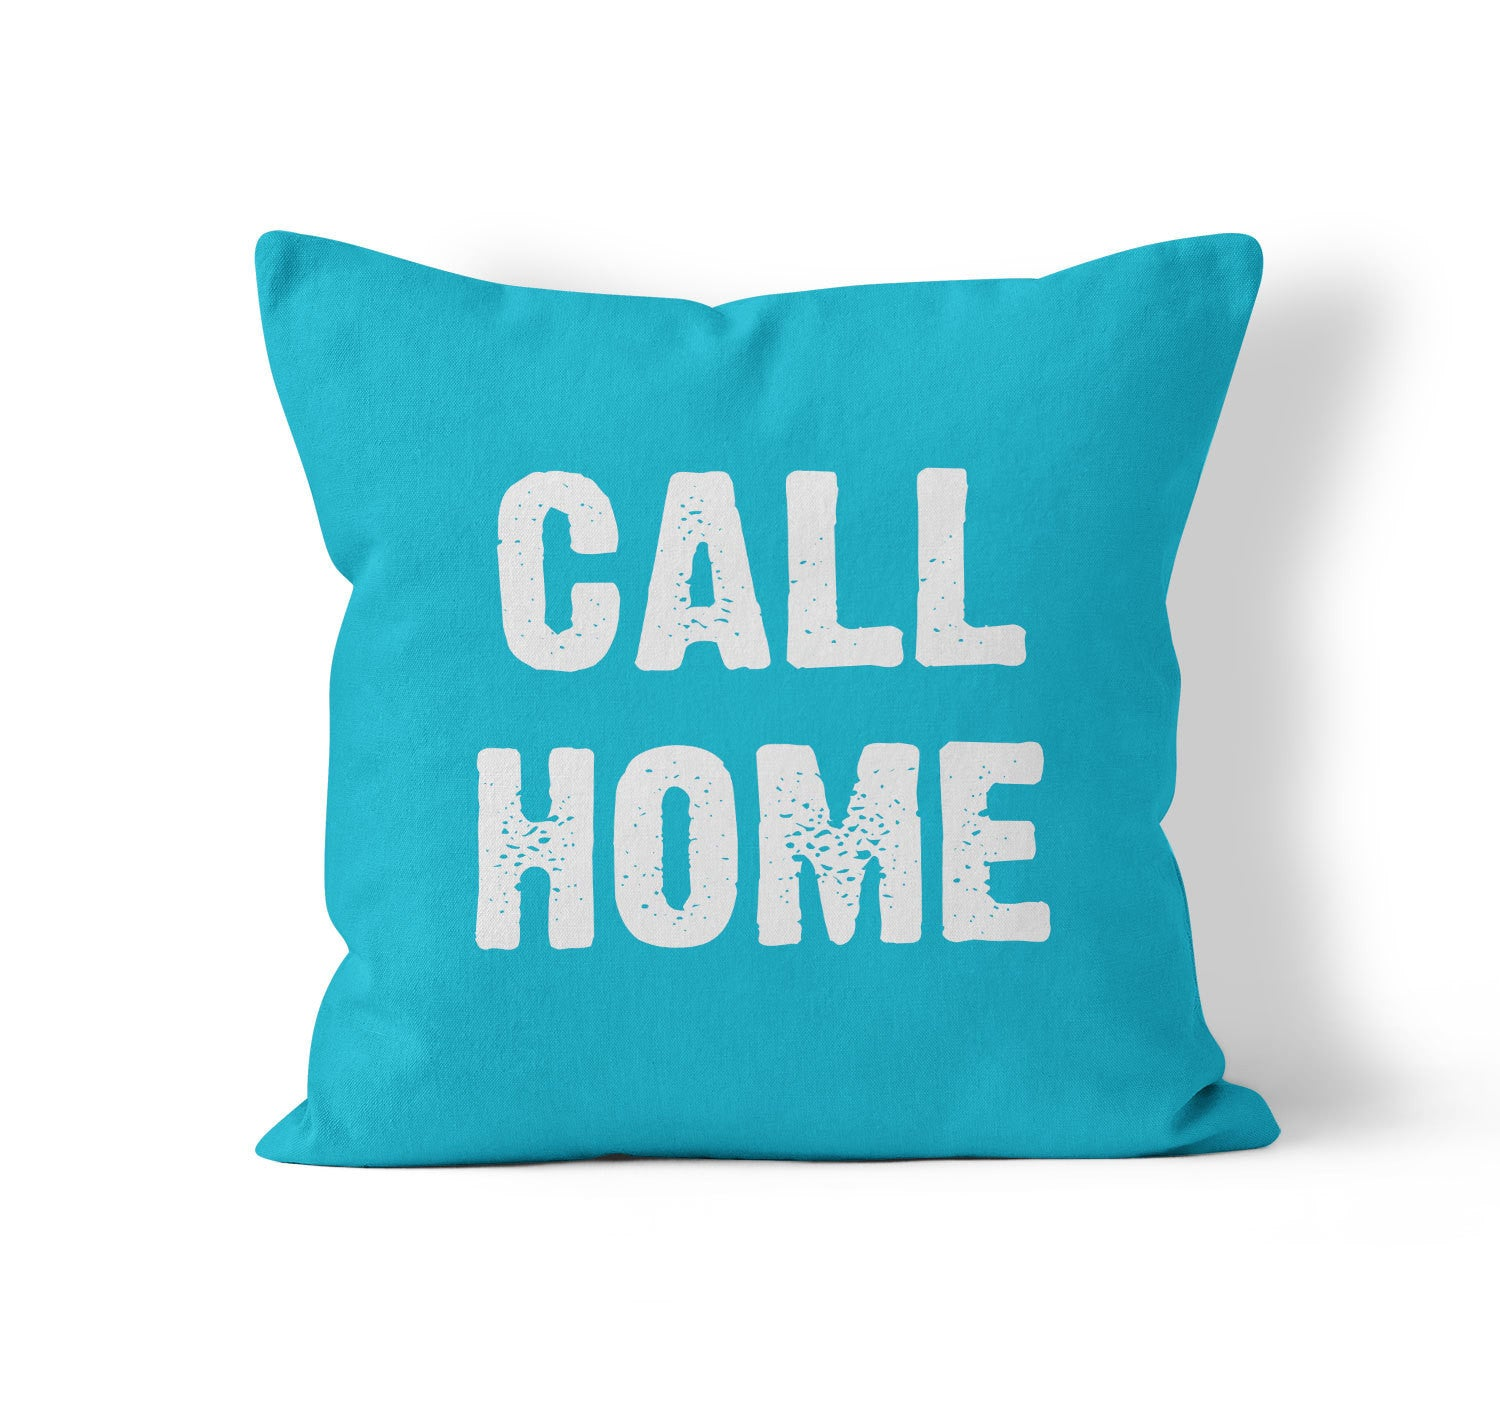 Pillow Cover, Call Home, CUSTOM COLOR by Kalilaine - Kalilaine Creations